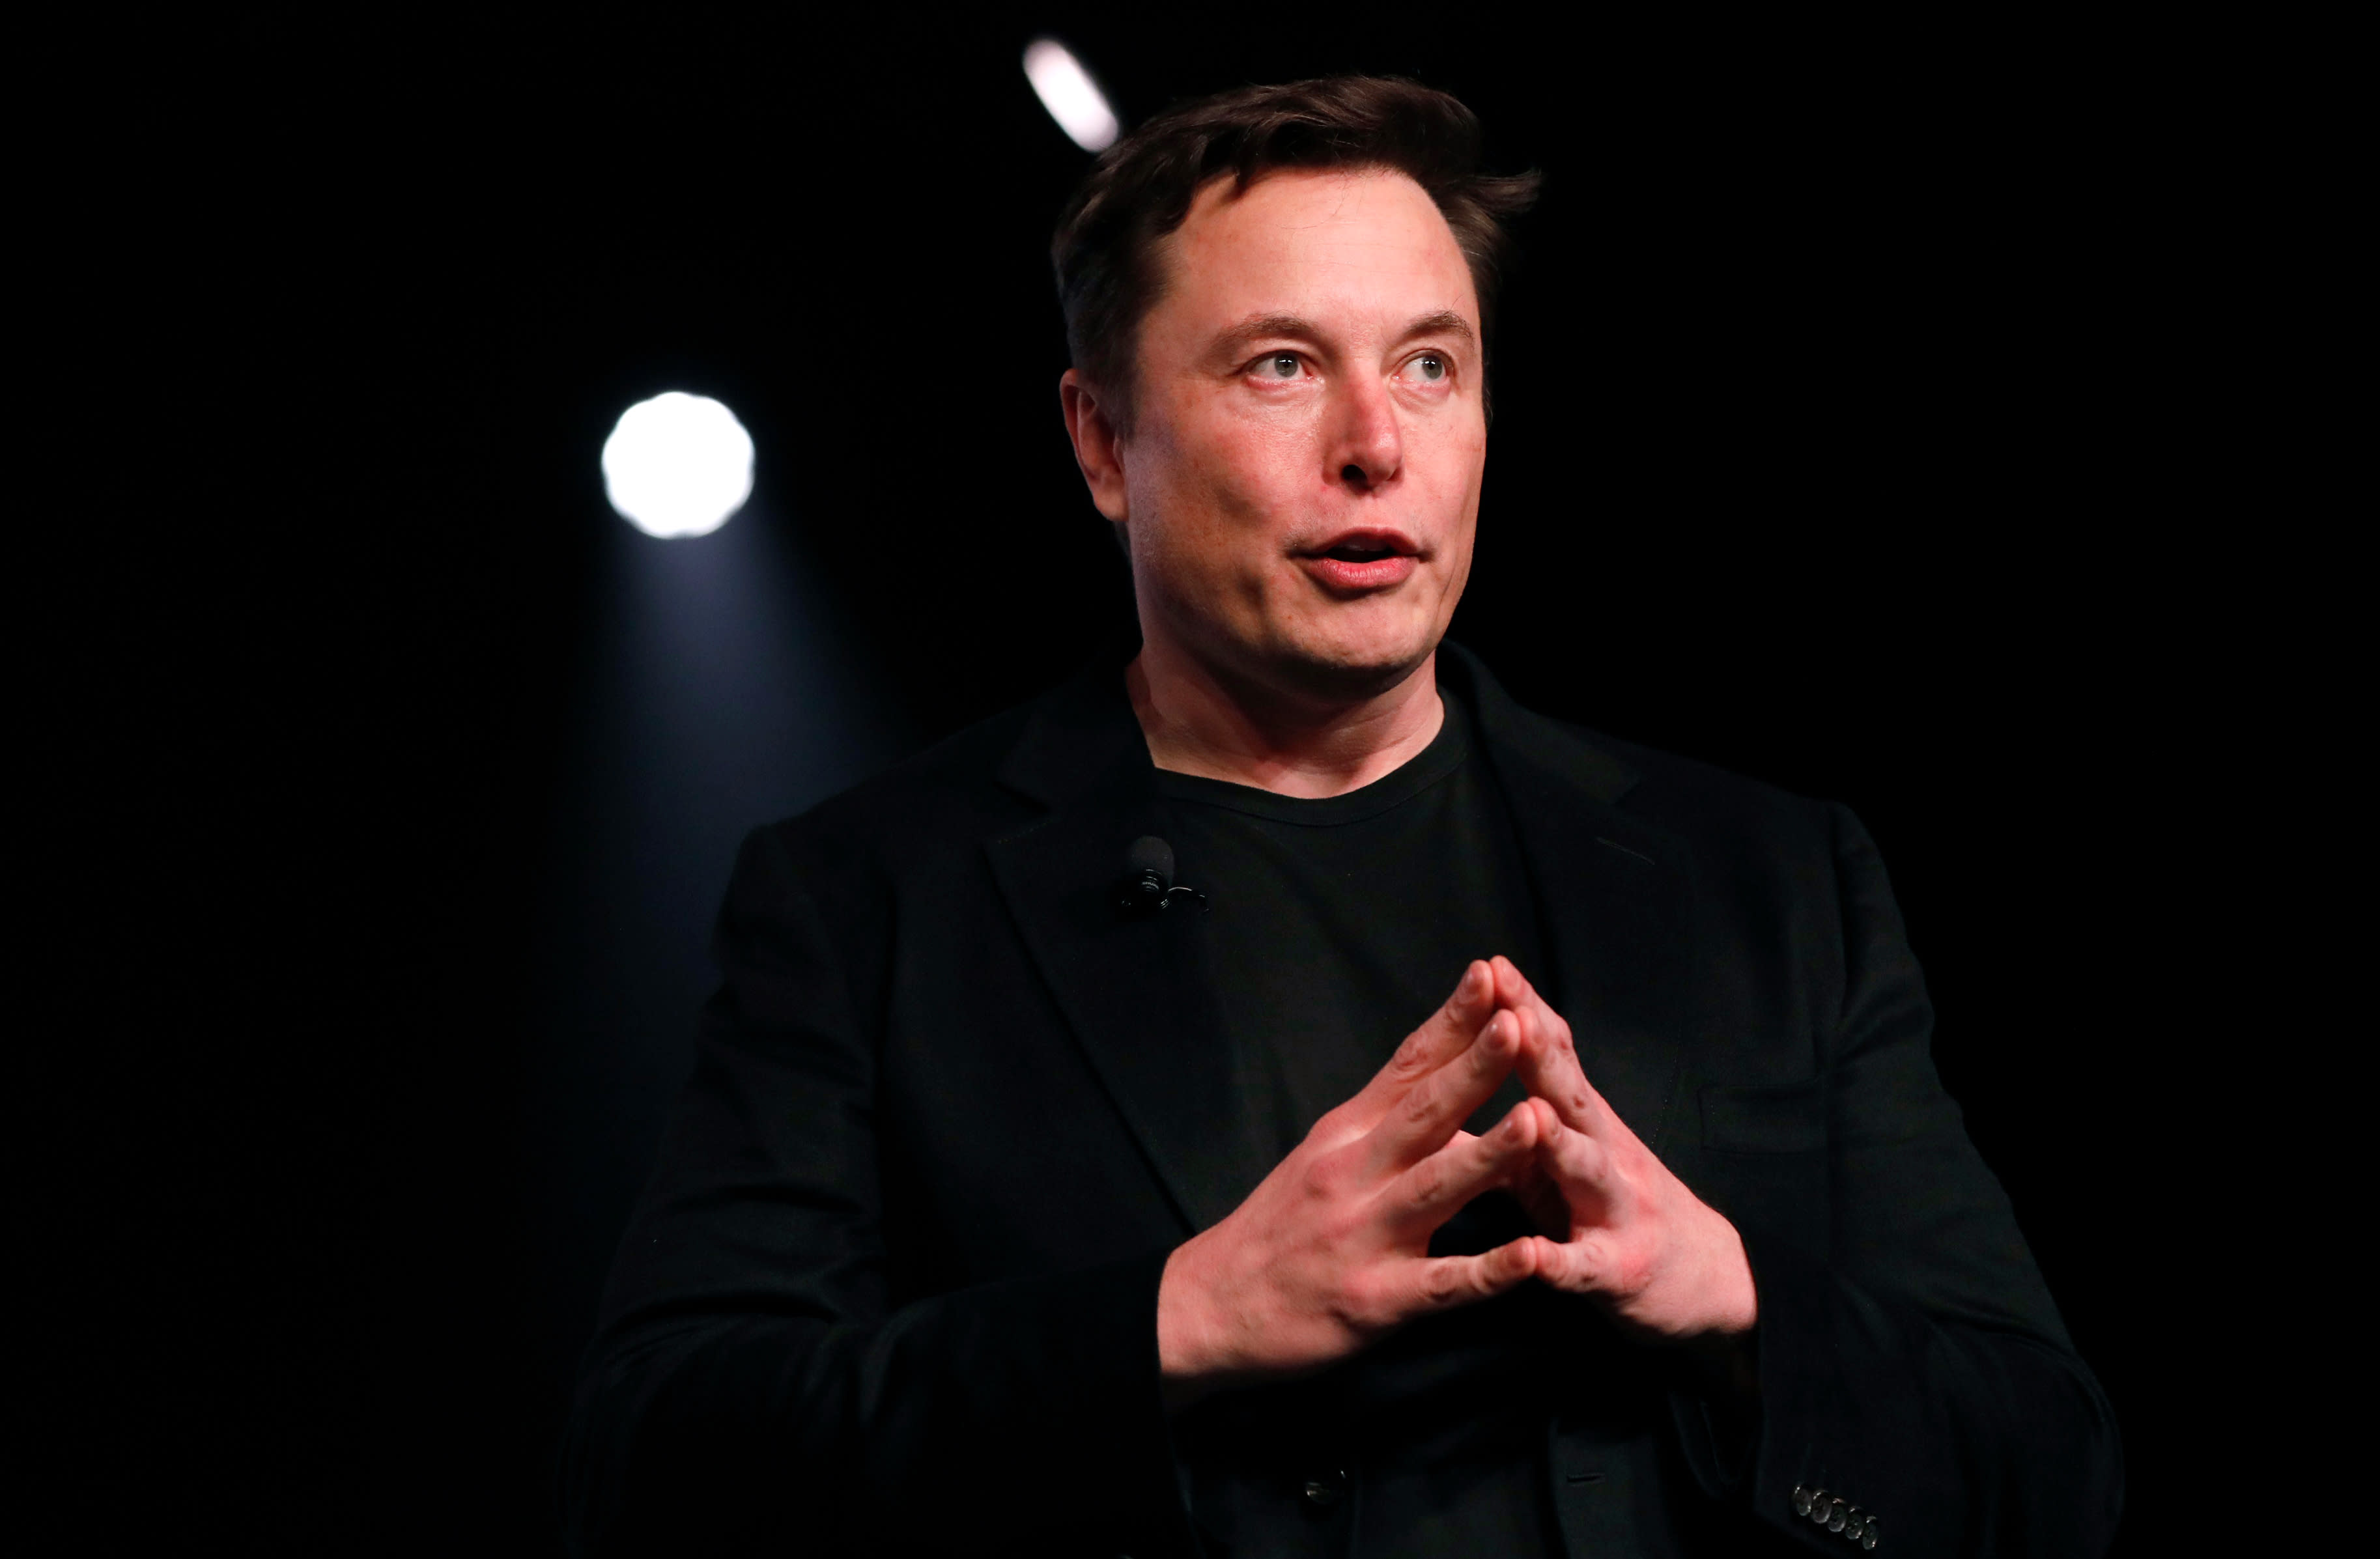 Musk's Boring Company pushes aggressive Baltimore-to-D.C. tunnel plan despite skeptics